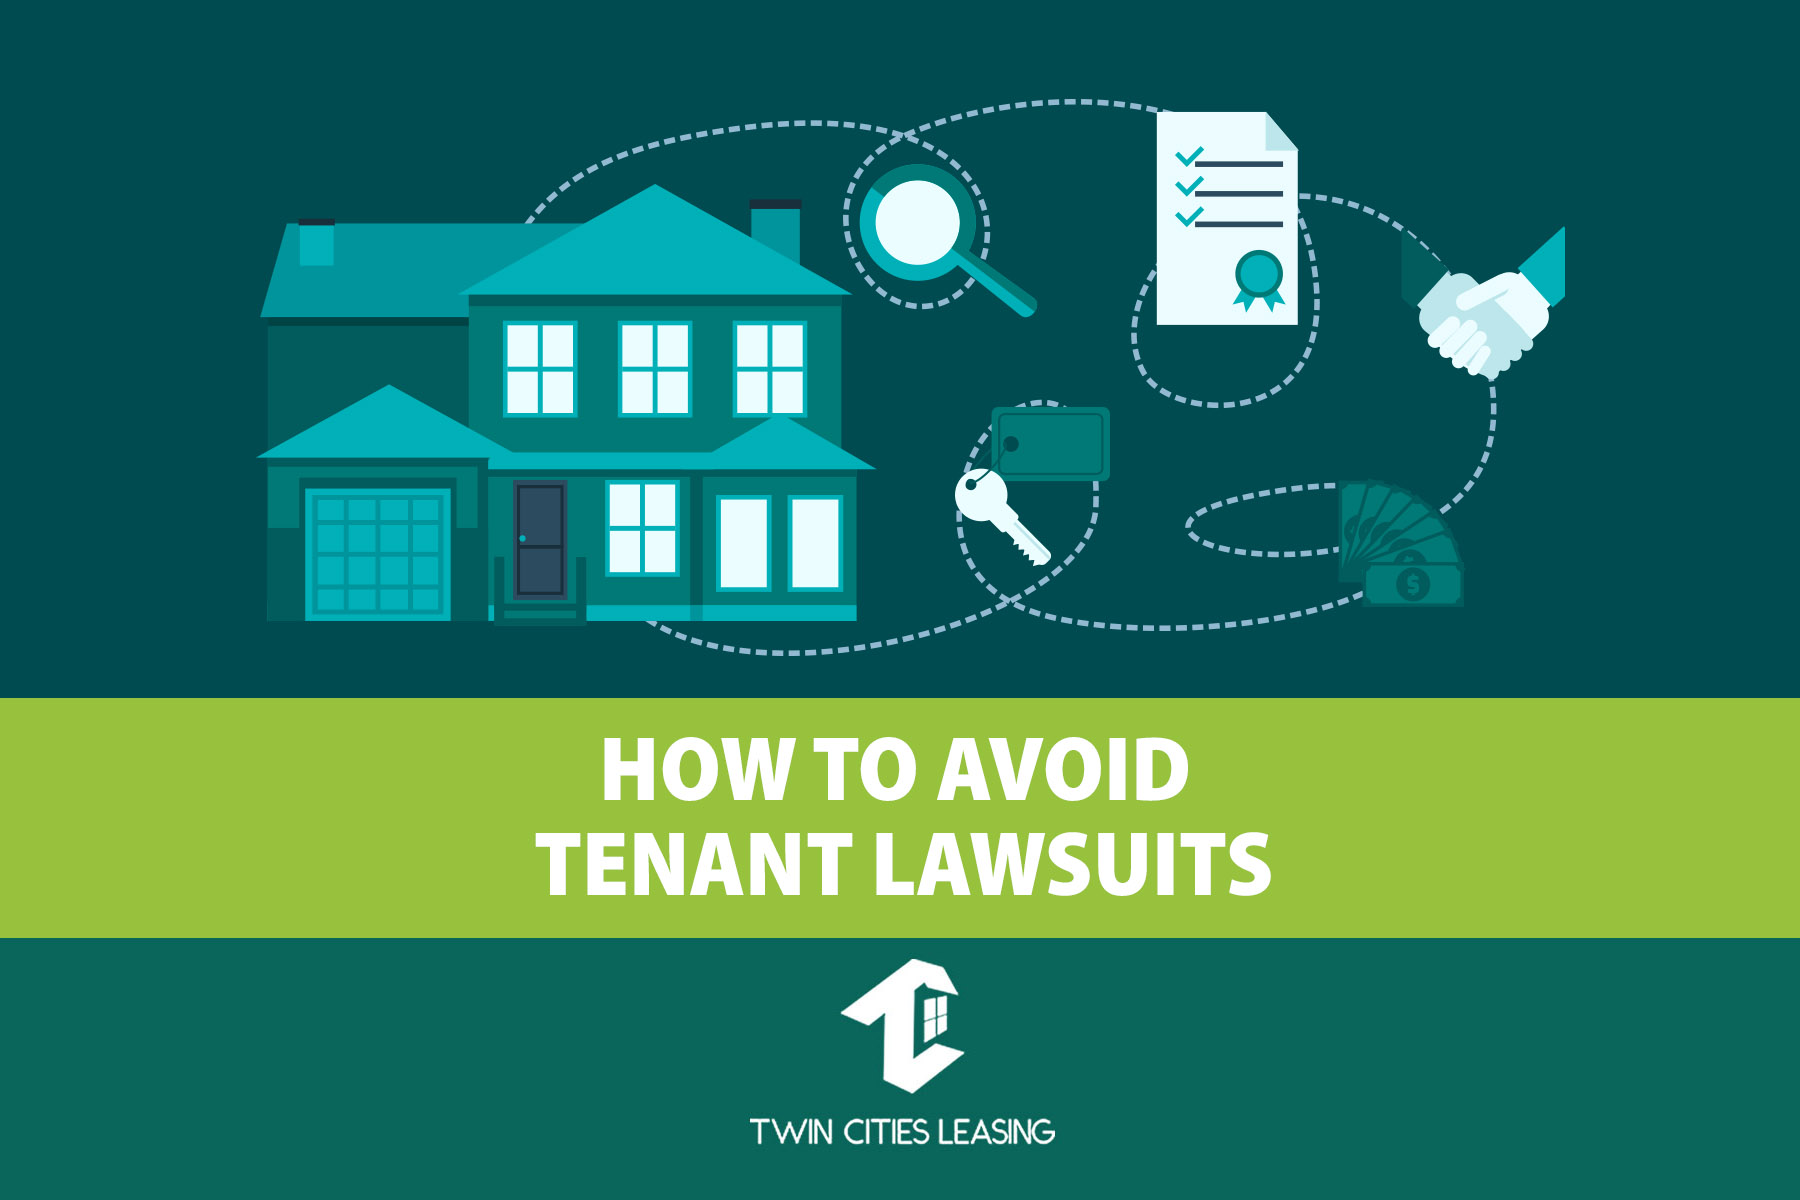 How to Avoid Tenant Lawsuits